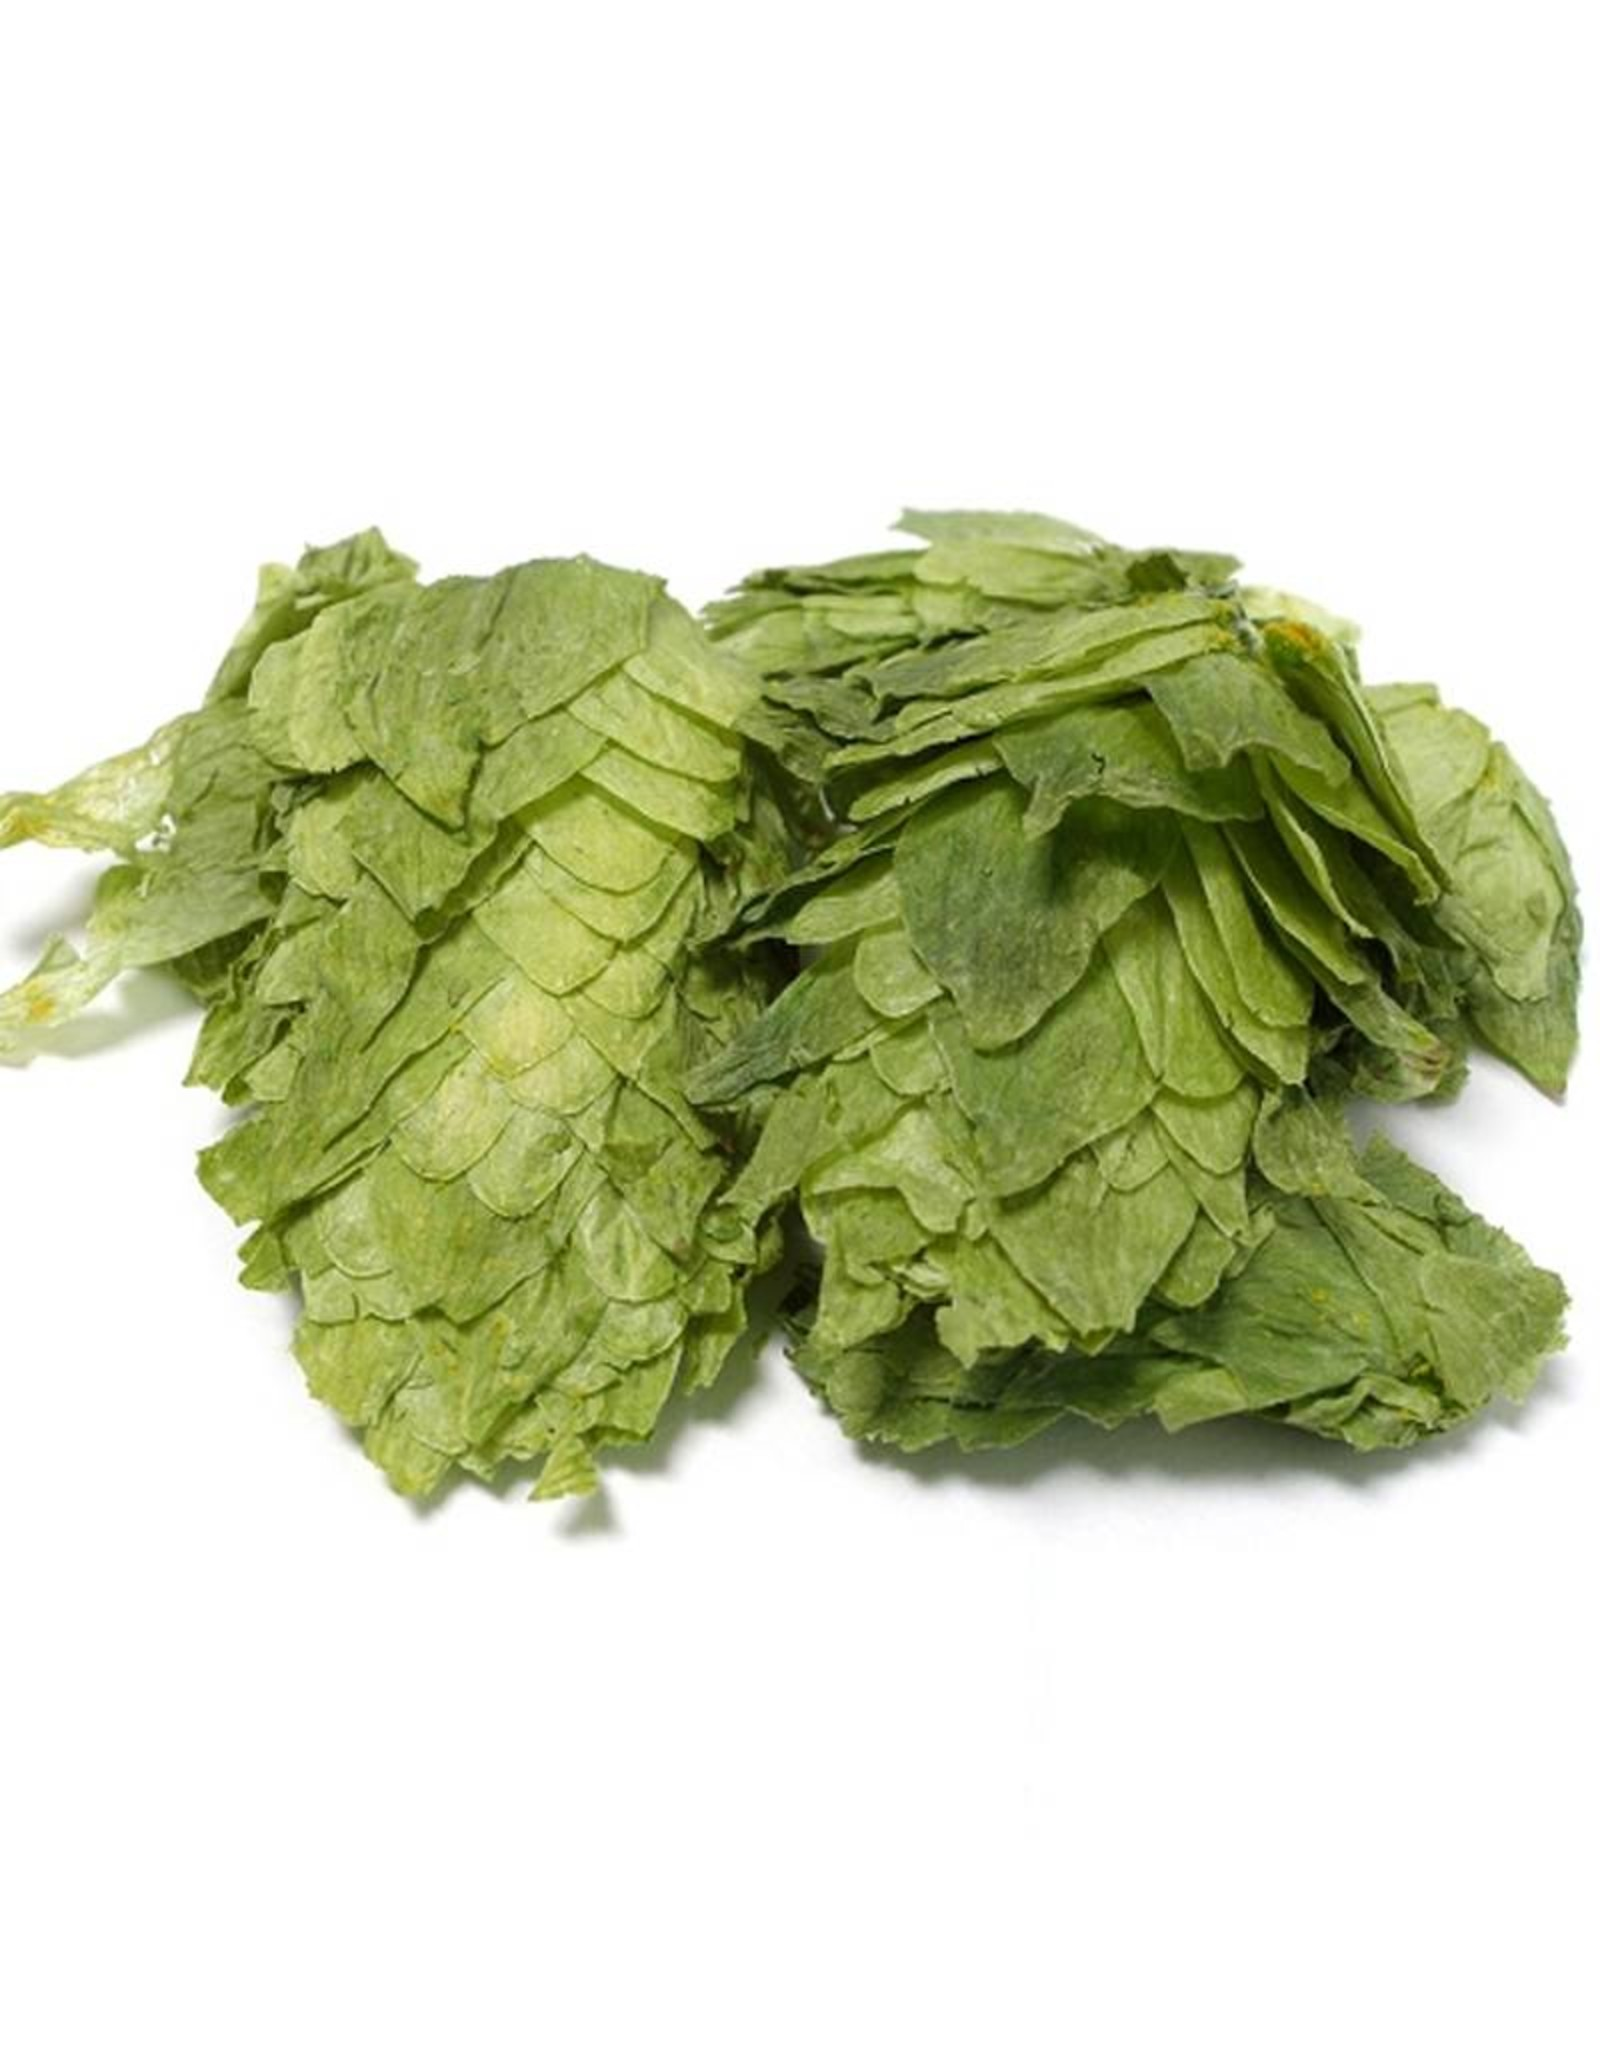 Crystal Leaf Hops (1lb)